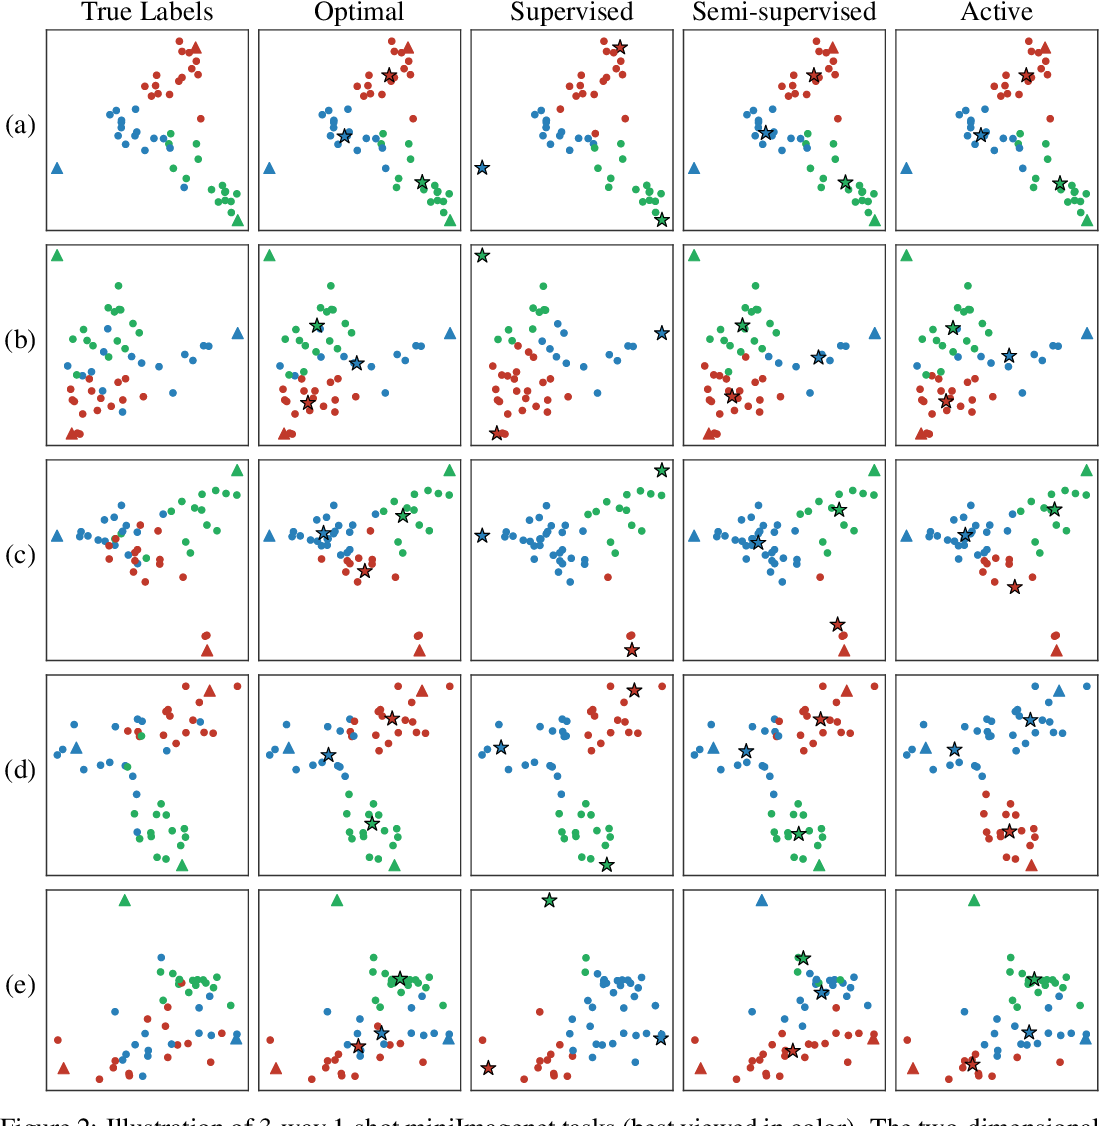 Figure 3 for Semi-Supervised and Active Few-Shot Learning with Prototypical Networks